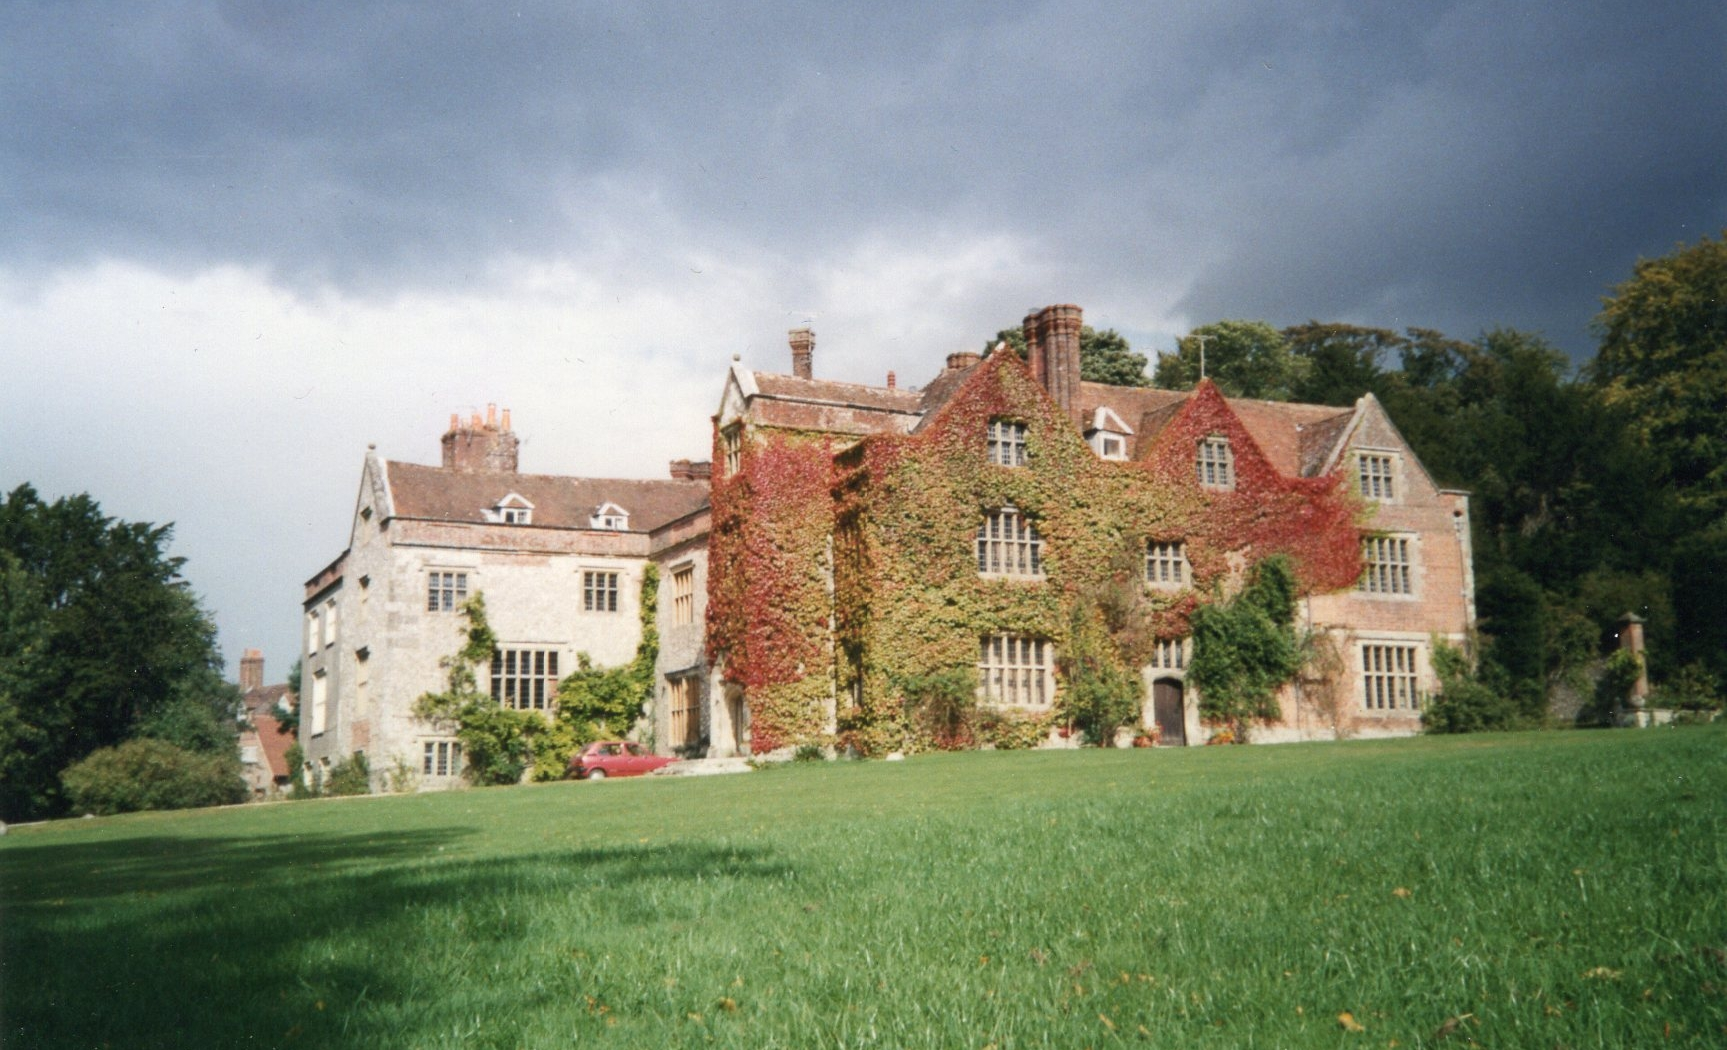 chawton house 1987 resized.jpg